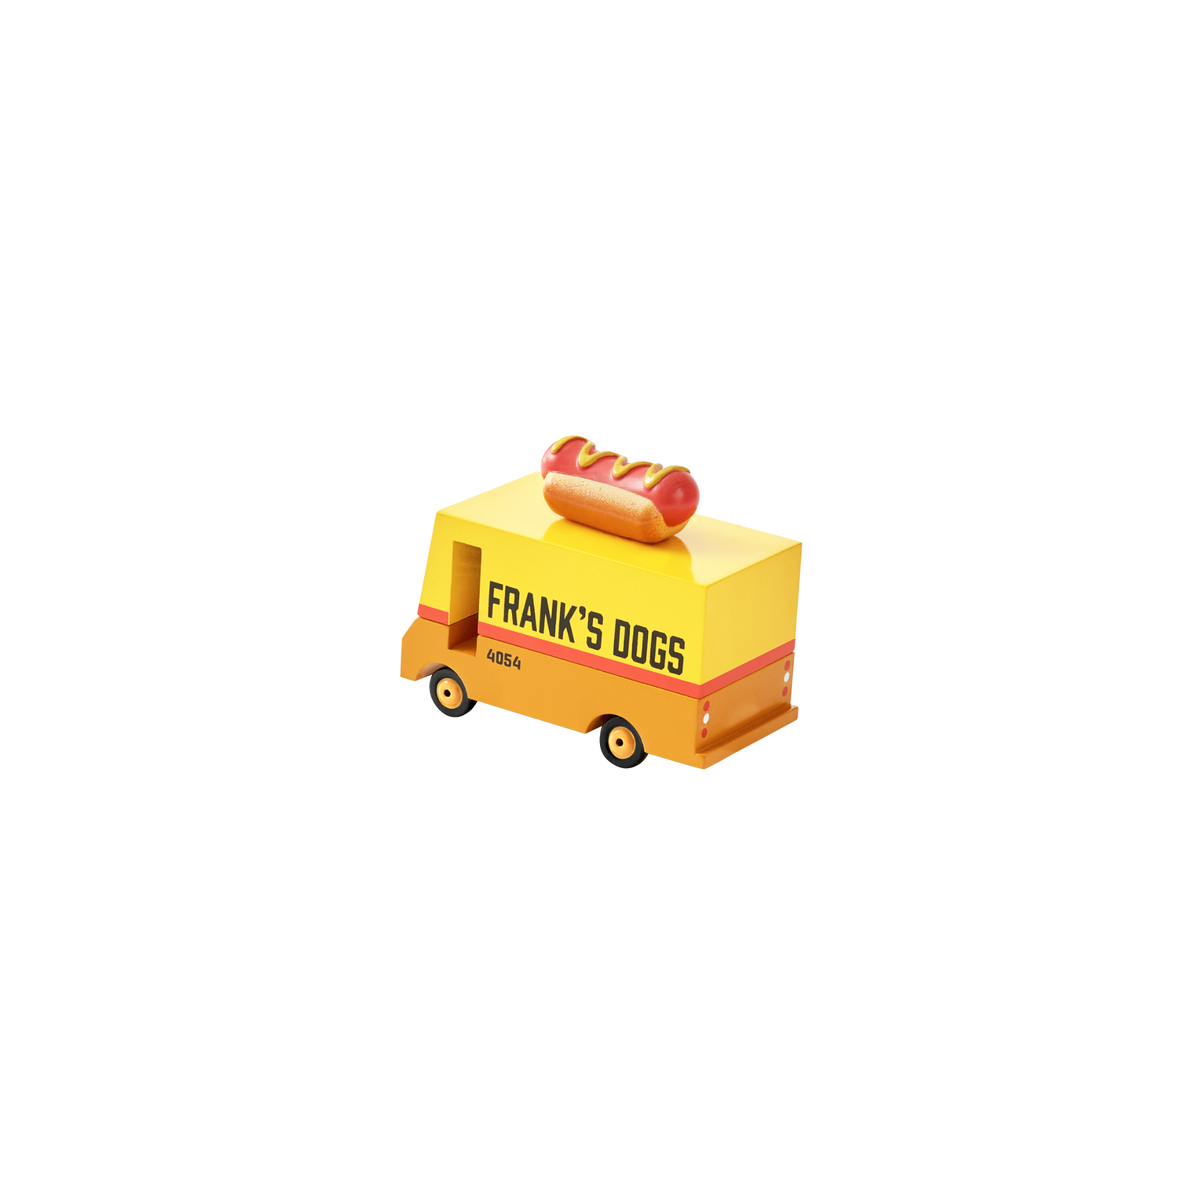 Hot Dog Van - CandyCars